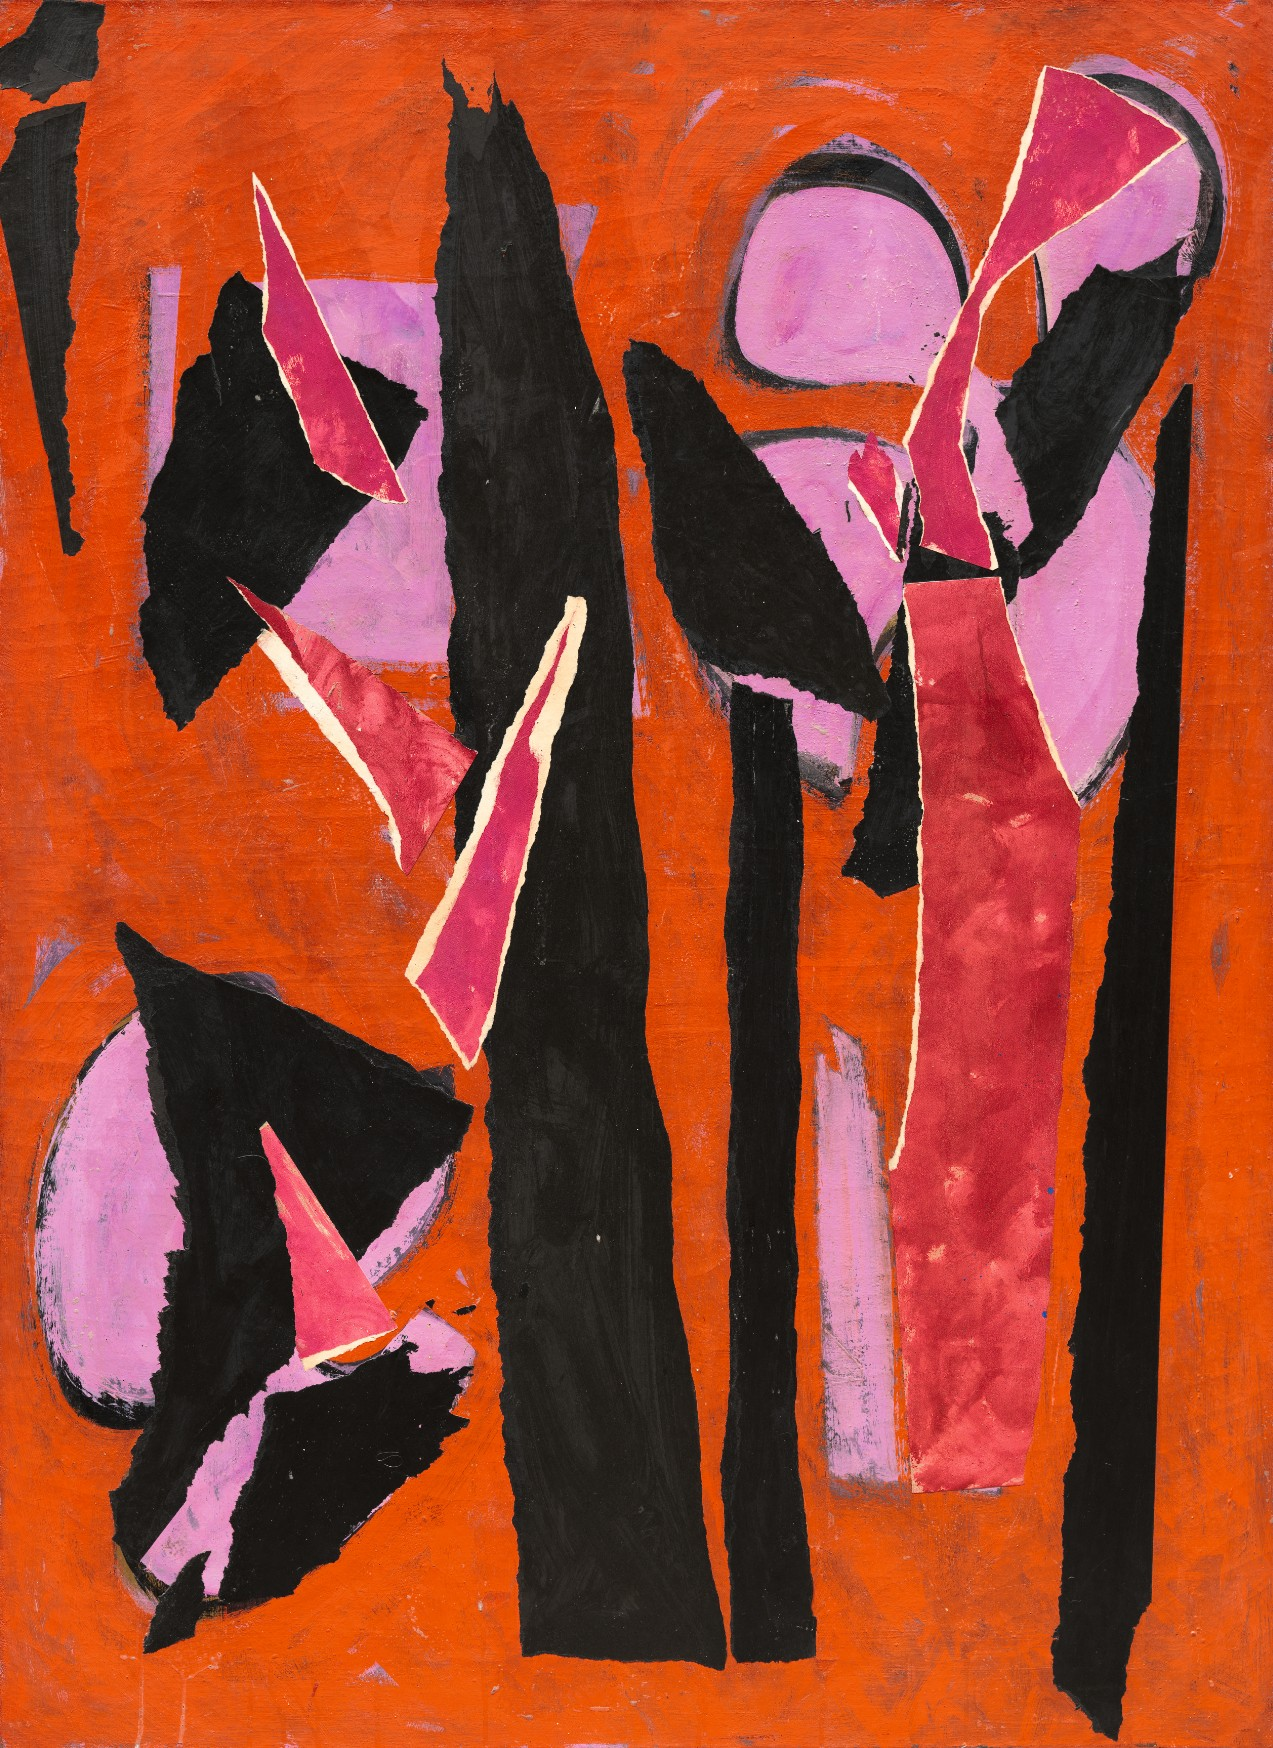 Lee Krasner: Living Colour Activity Day